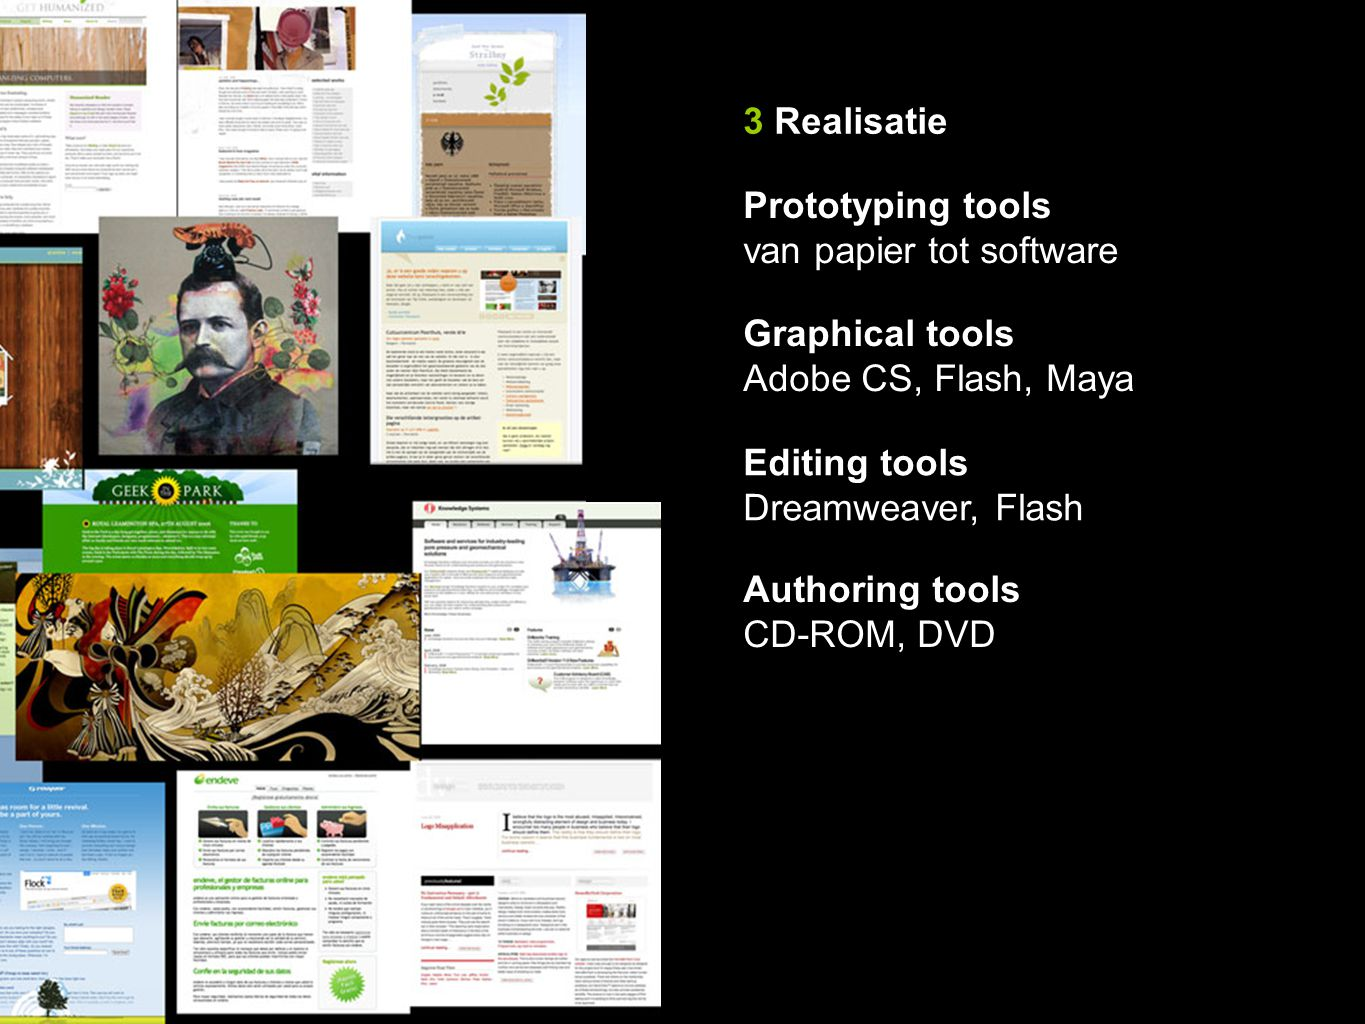 3 Realisatie Prototyping tools. van papier tot software. Graphical tools. Adobe CS, Flash, Maya.